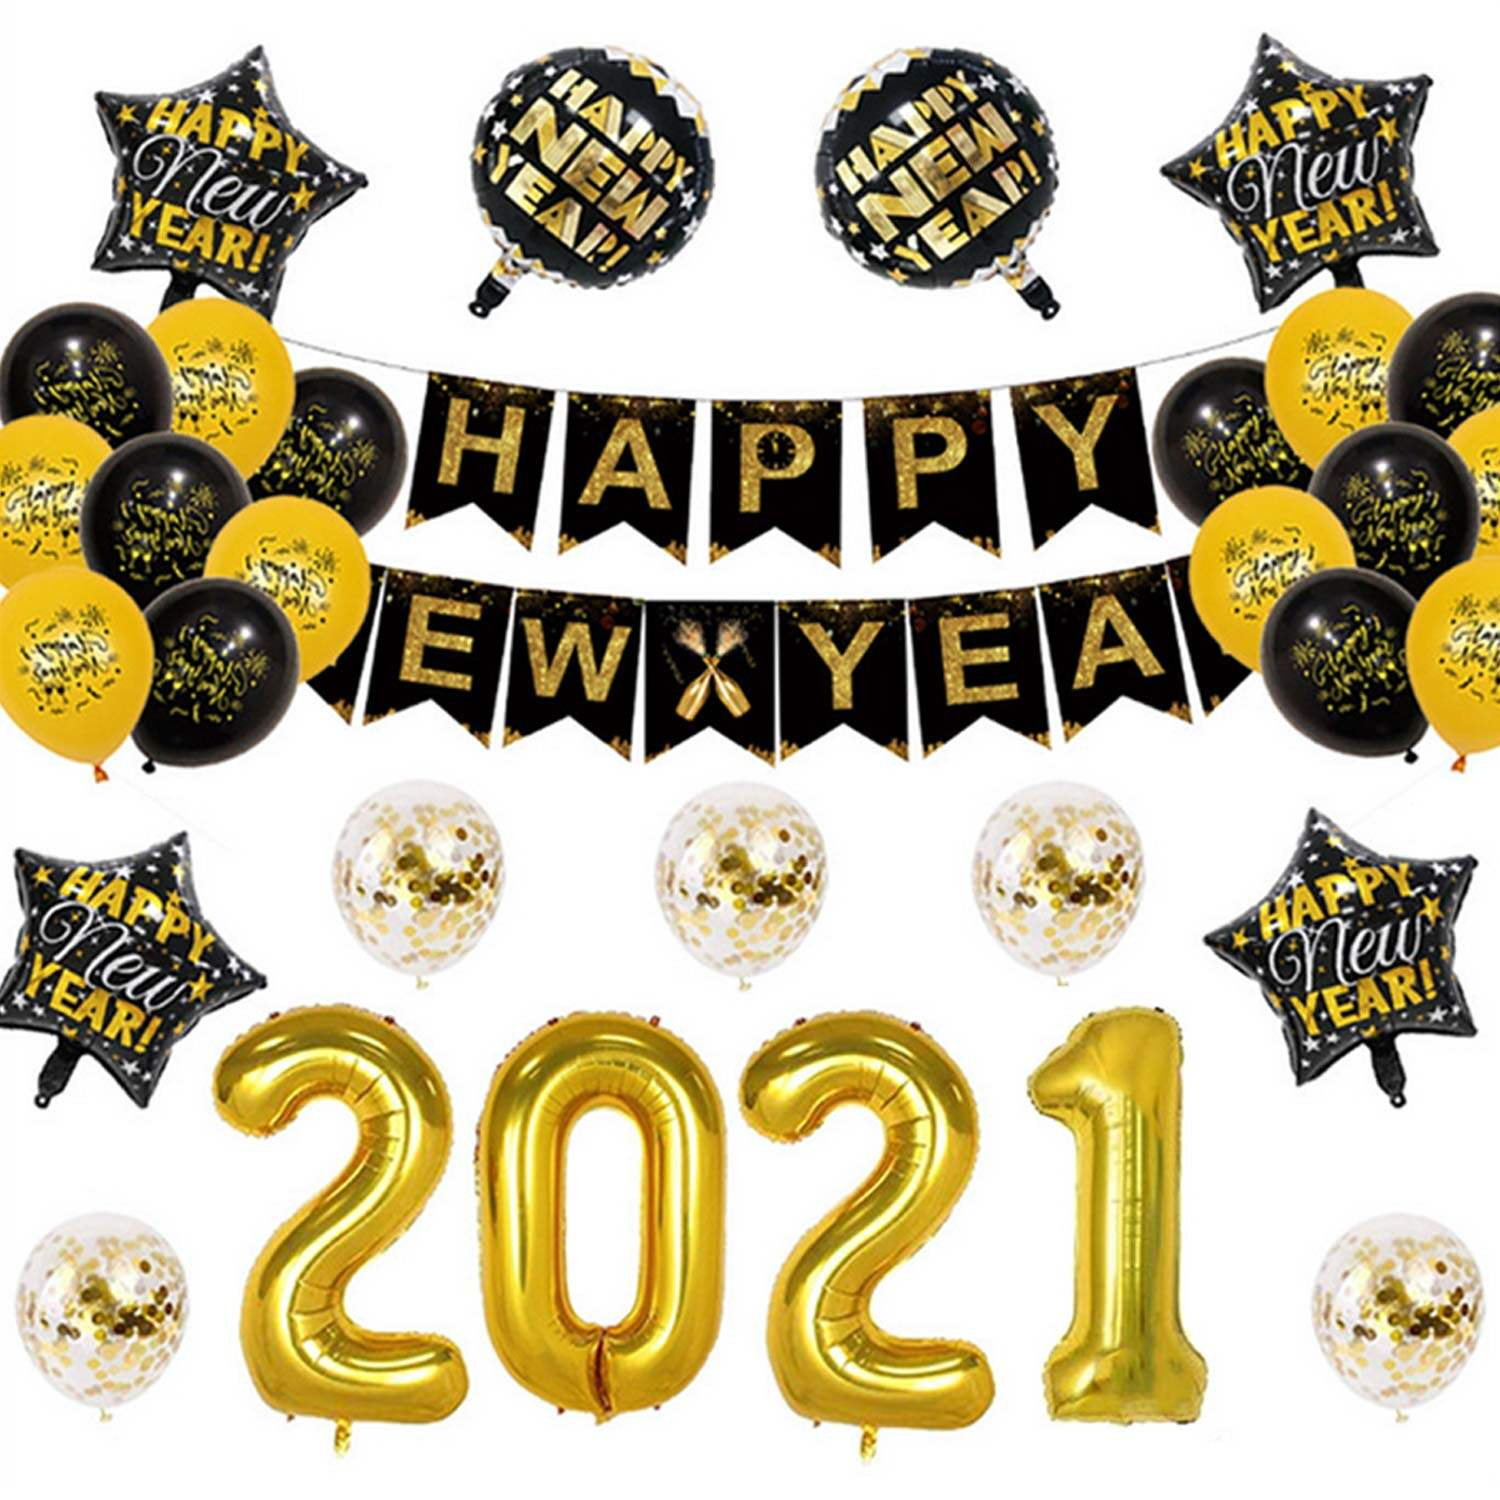 28pcs Party Decorations Kit 2021 Number Foil Balloon Confetti Balloons With Happy New Year Banner For New Years Eve Party Supplies Lazada